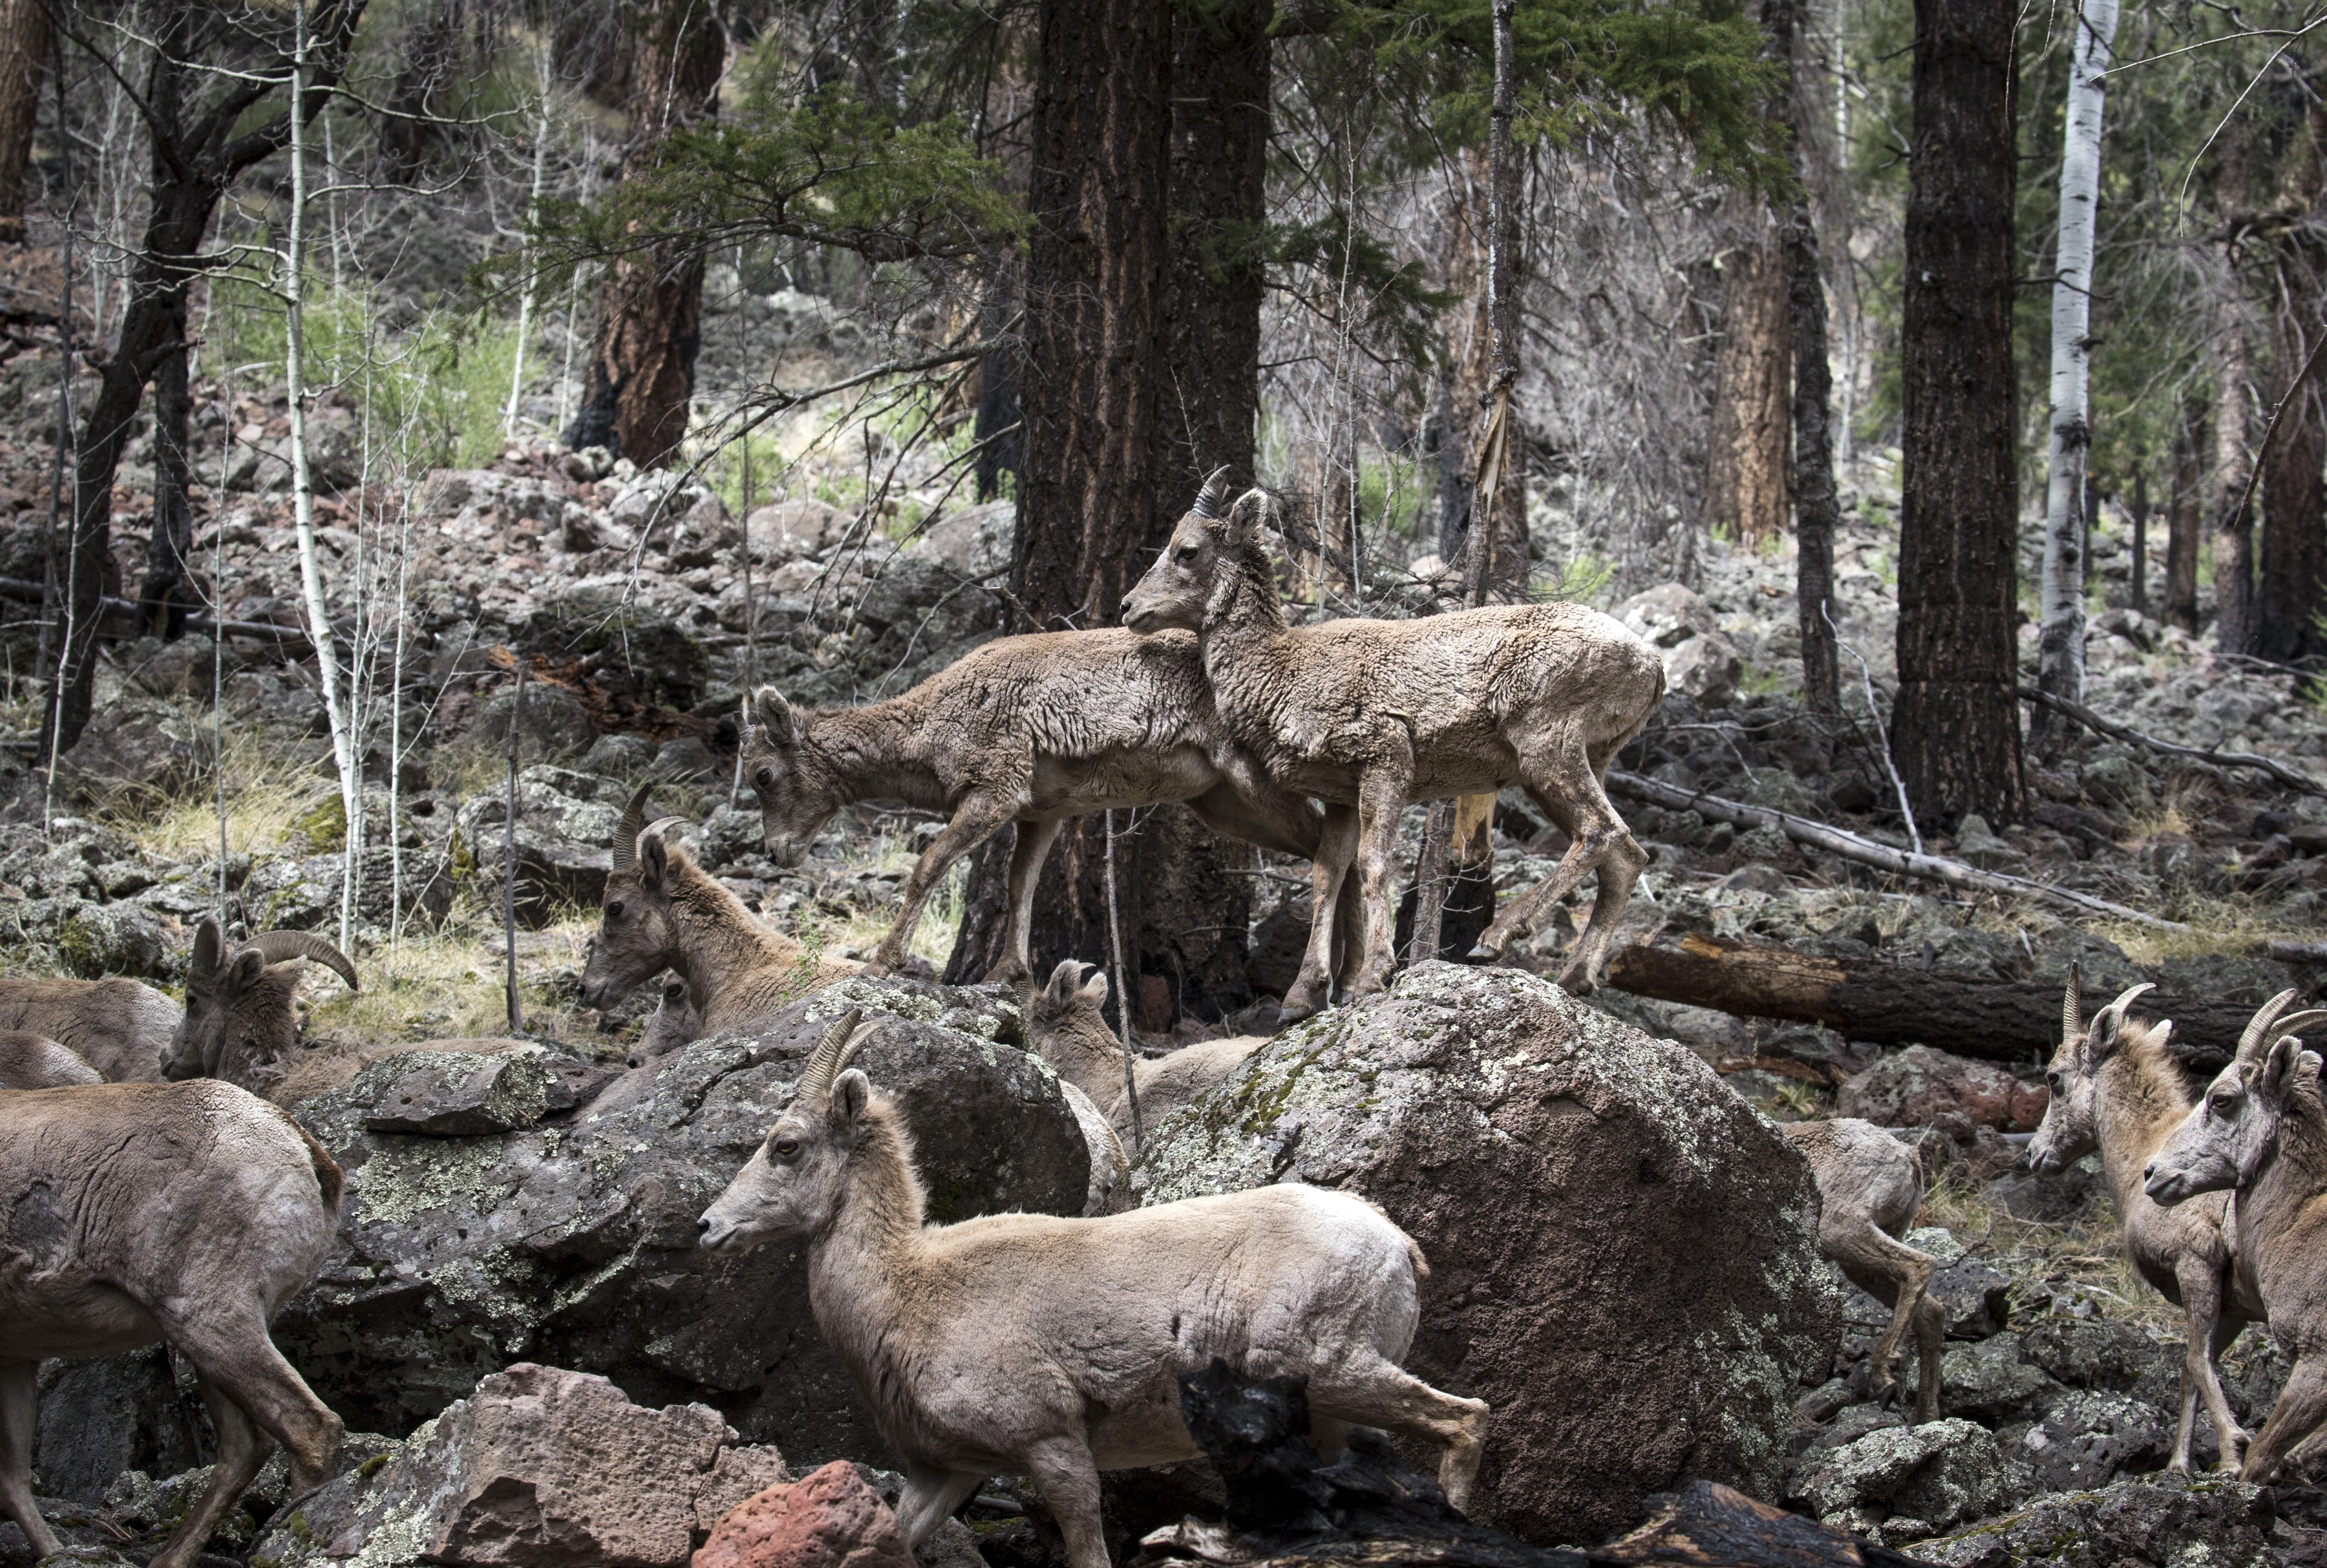 A herd of bighorn sheep dots the Apache-Sitgreaves National Forests, among Arizona's most prominent natural wonders, and one that has been devastated by climate change and wildfires.